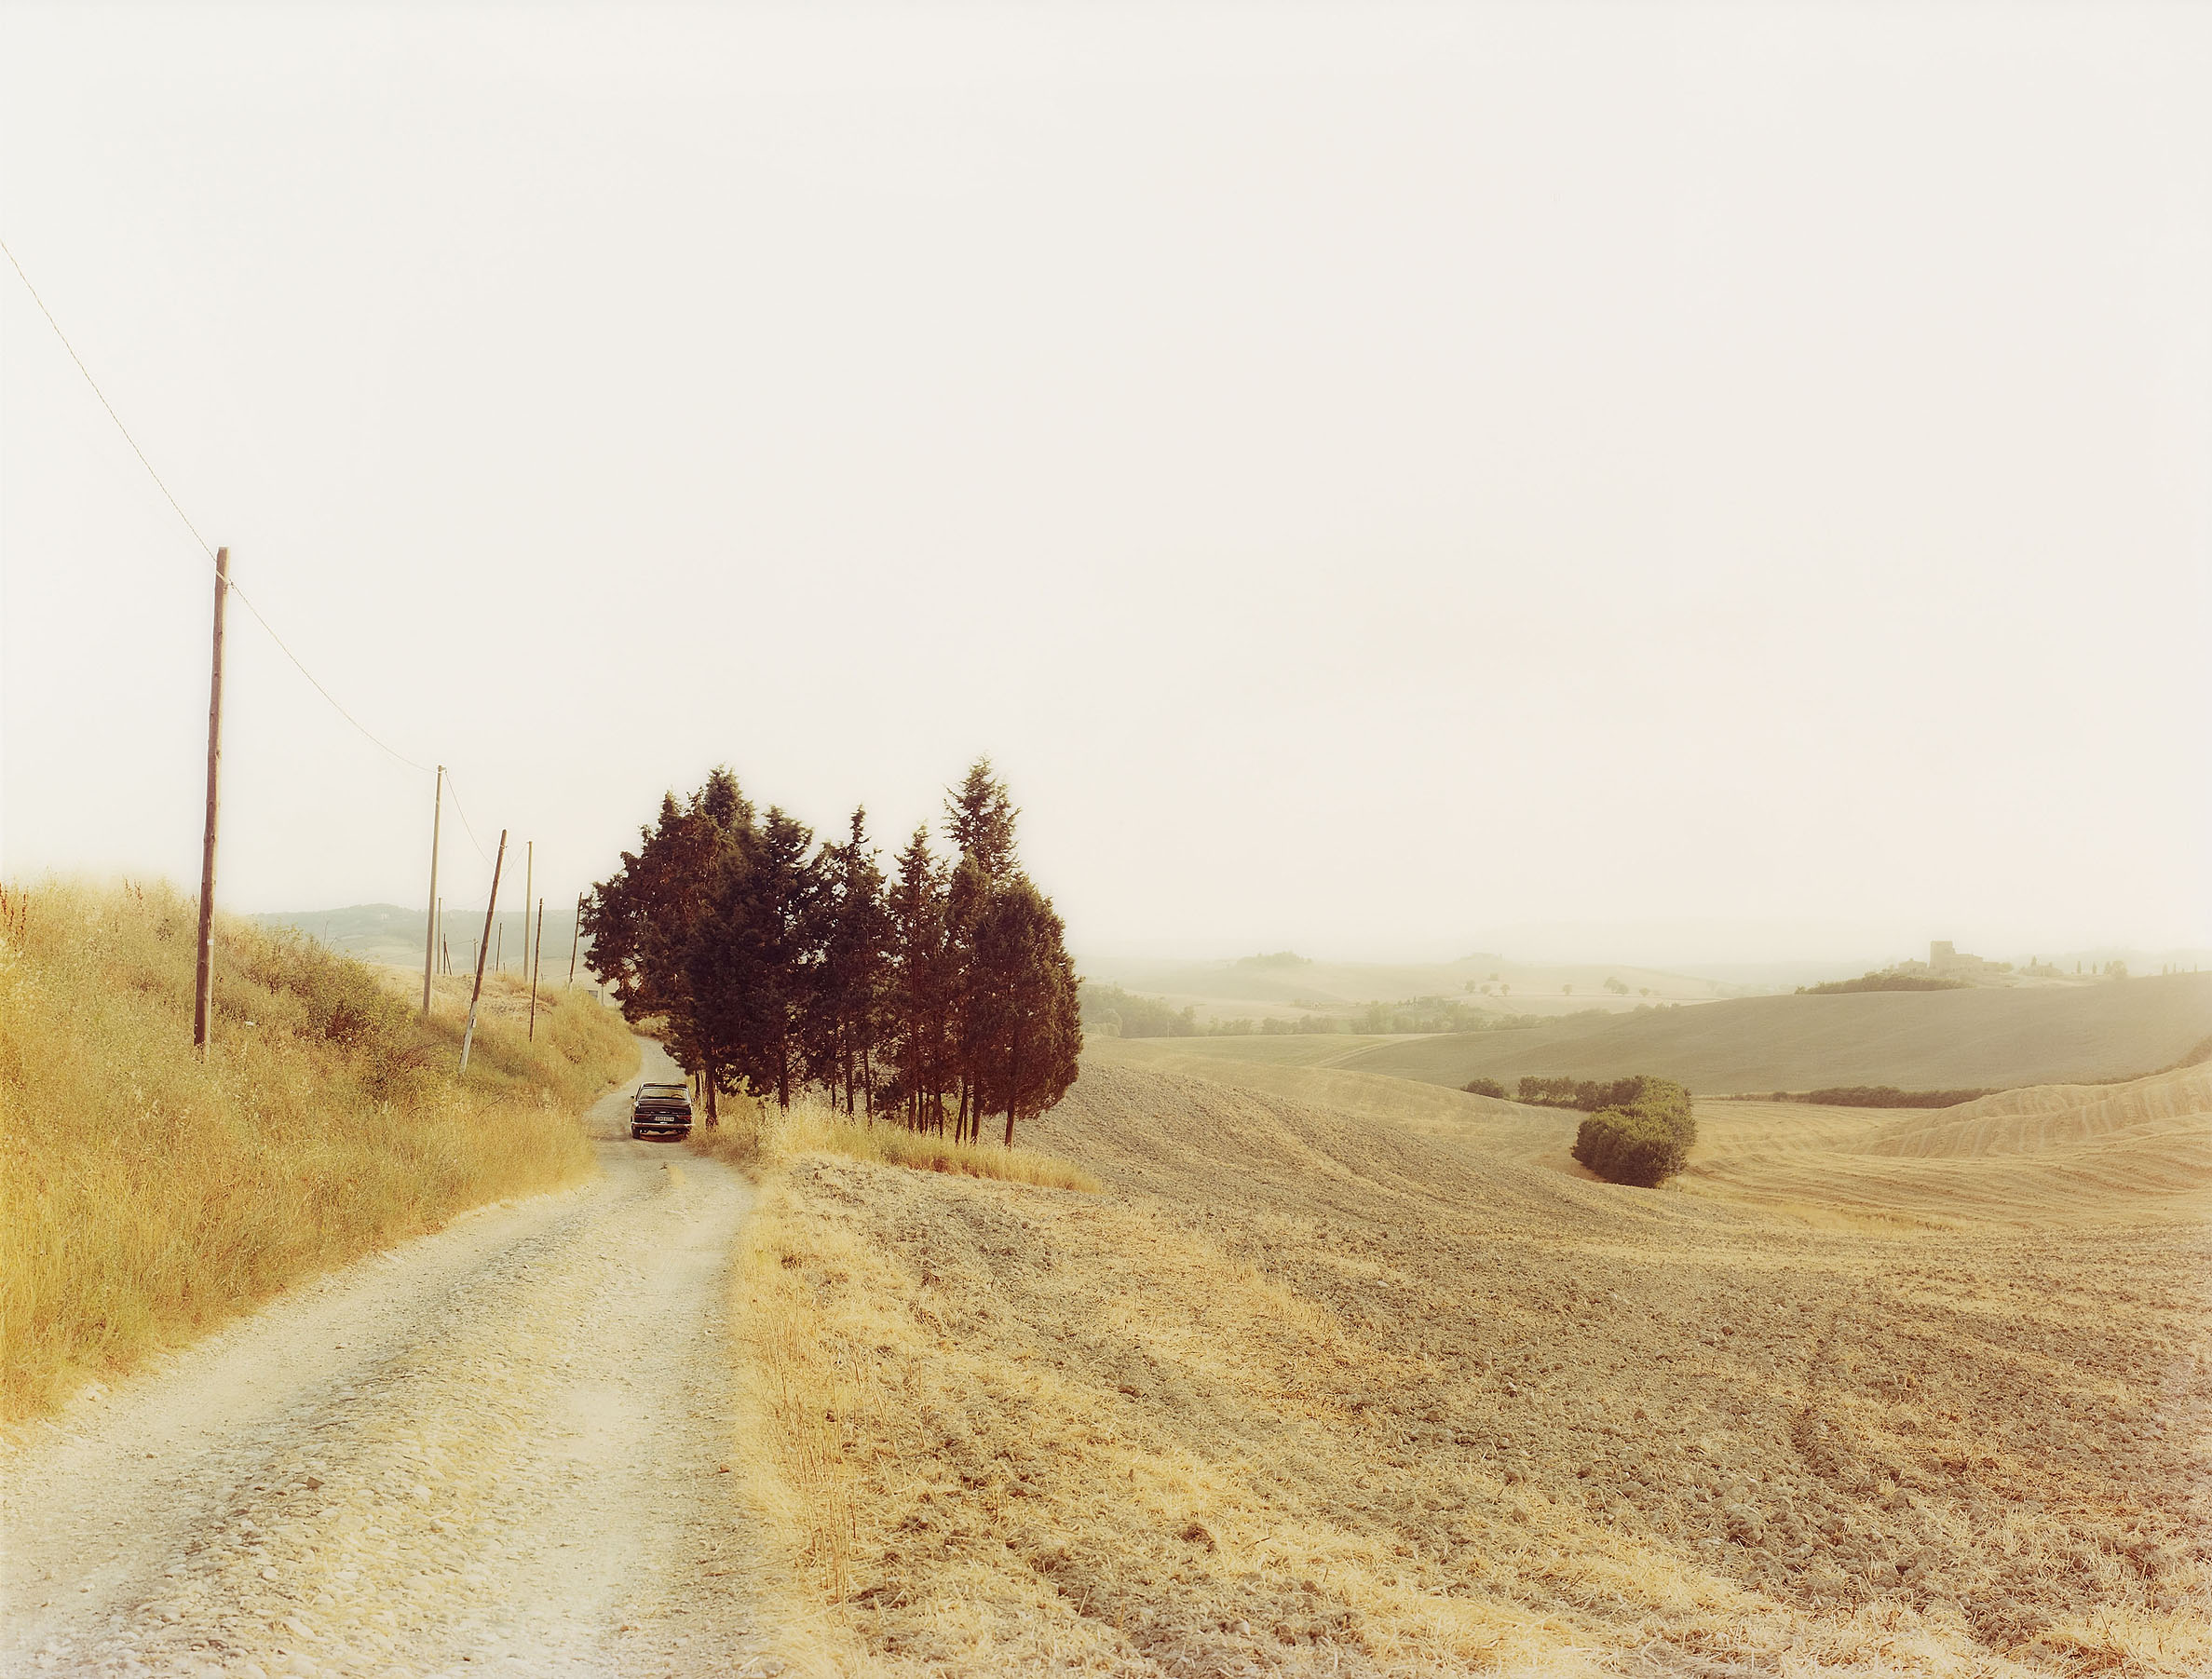 Elger Esser, Radi, Italien, 2002. Chromogenic print, face-mounted to plexiglass. 174 x 229 cm, Estimate € 20,000 – 25,000